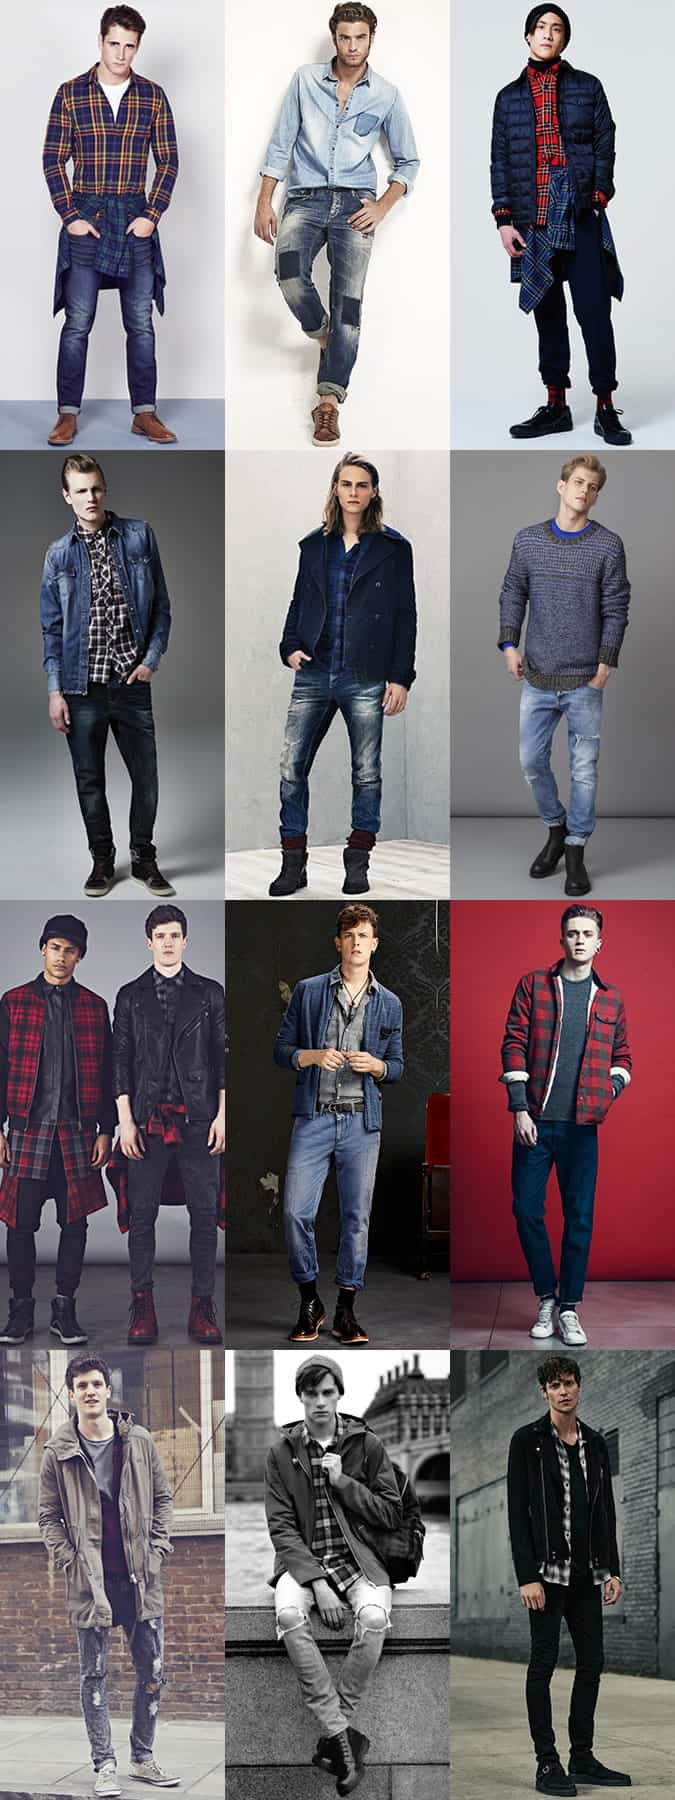 Men's Grunge Outfit Inspiration Lookbook